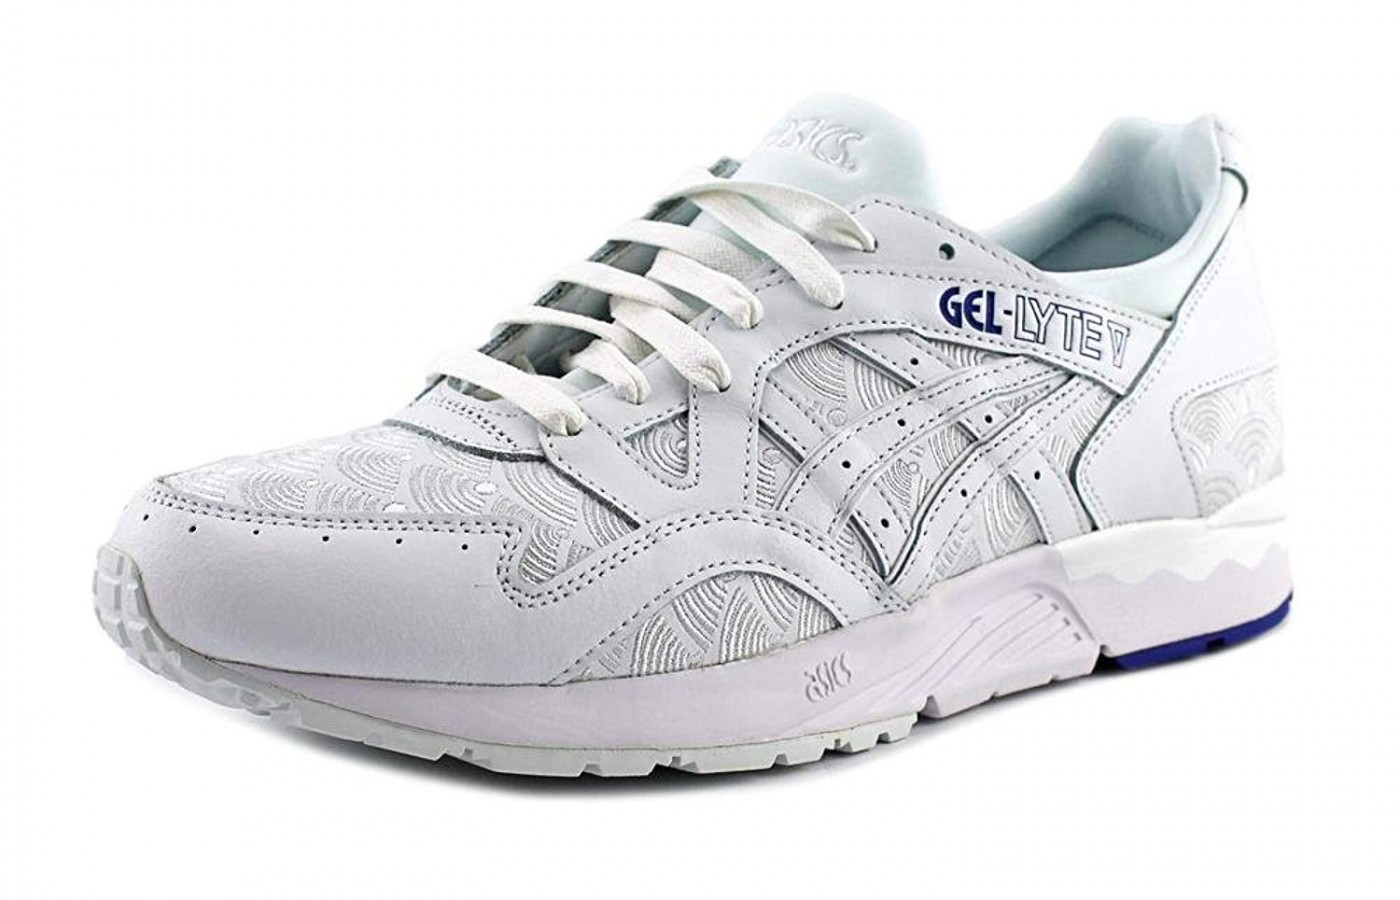 asics shoes gel lyte